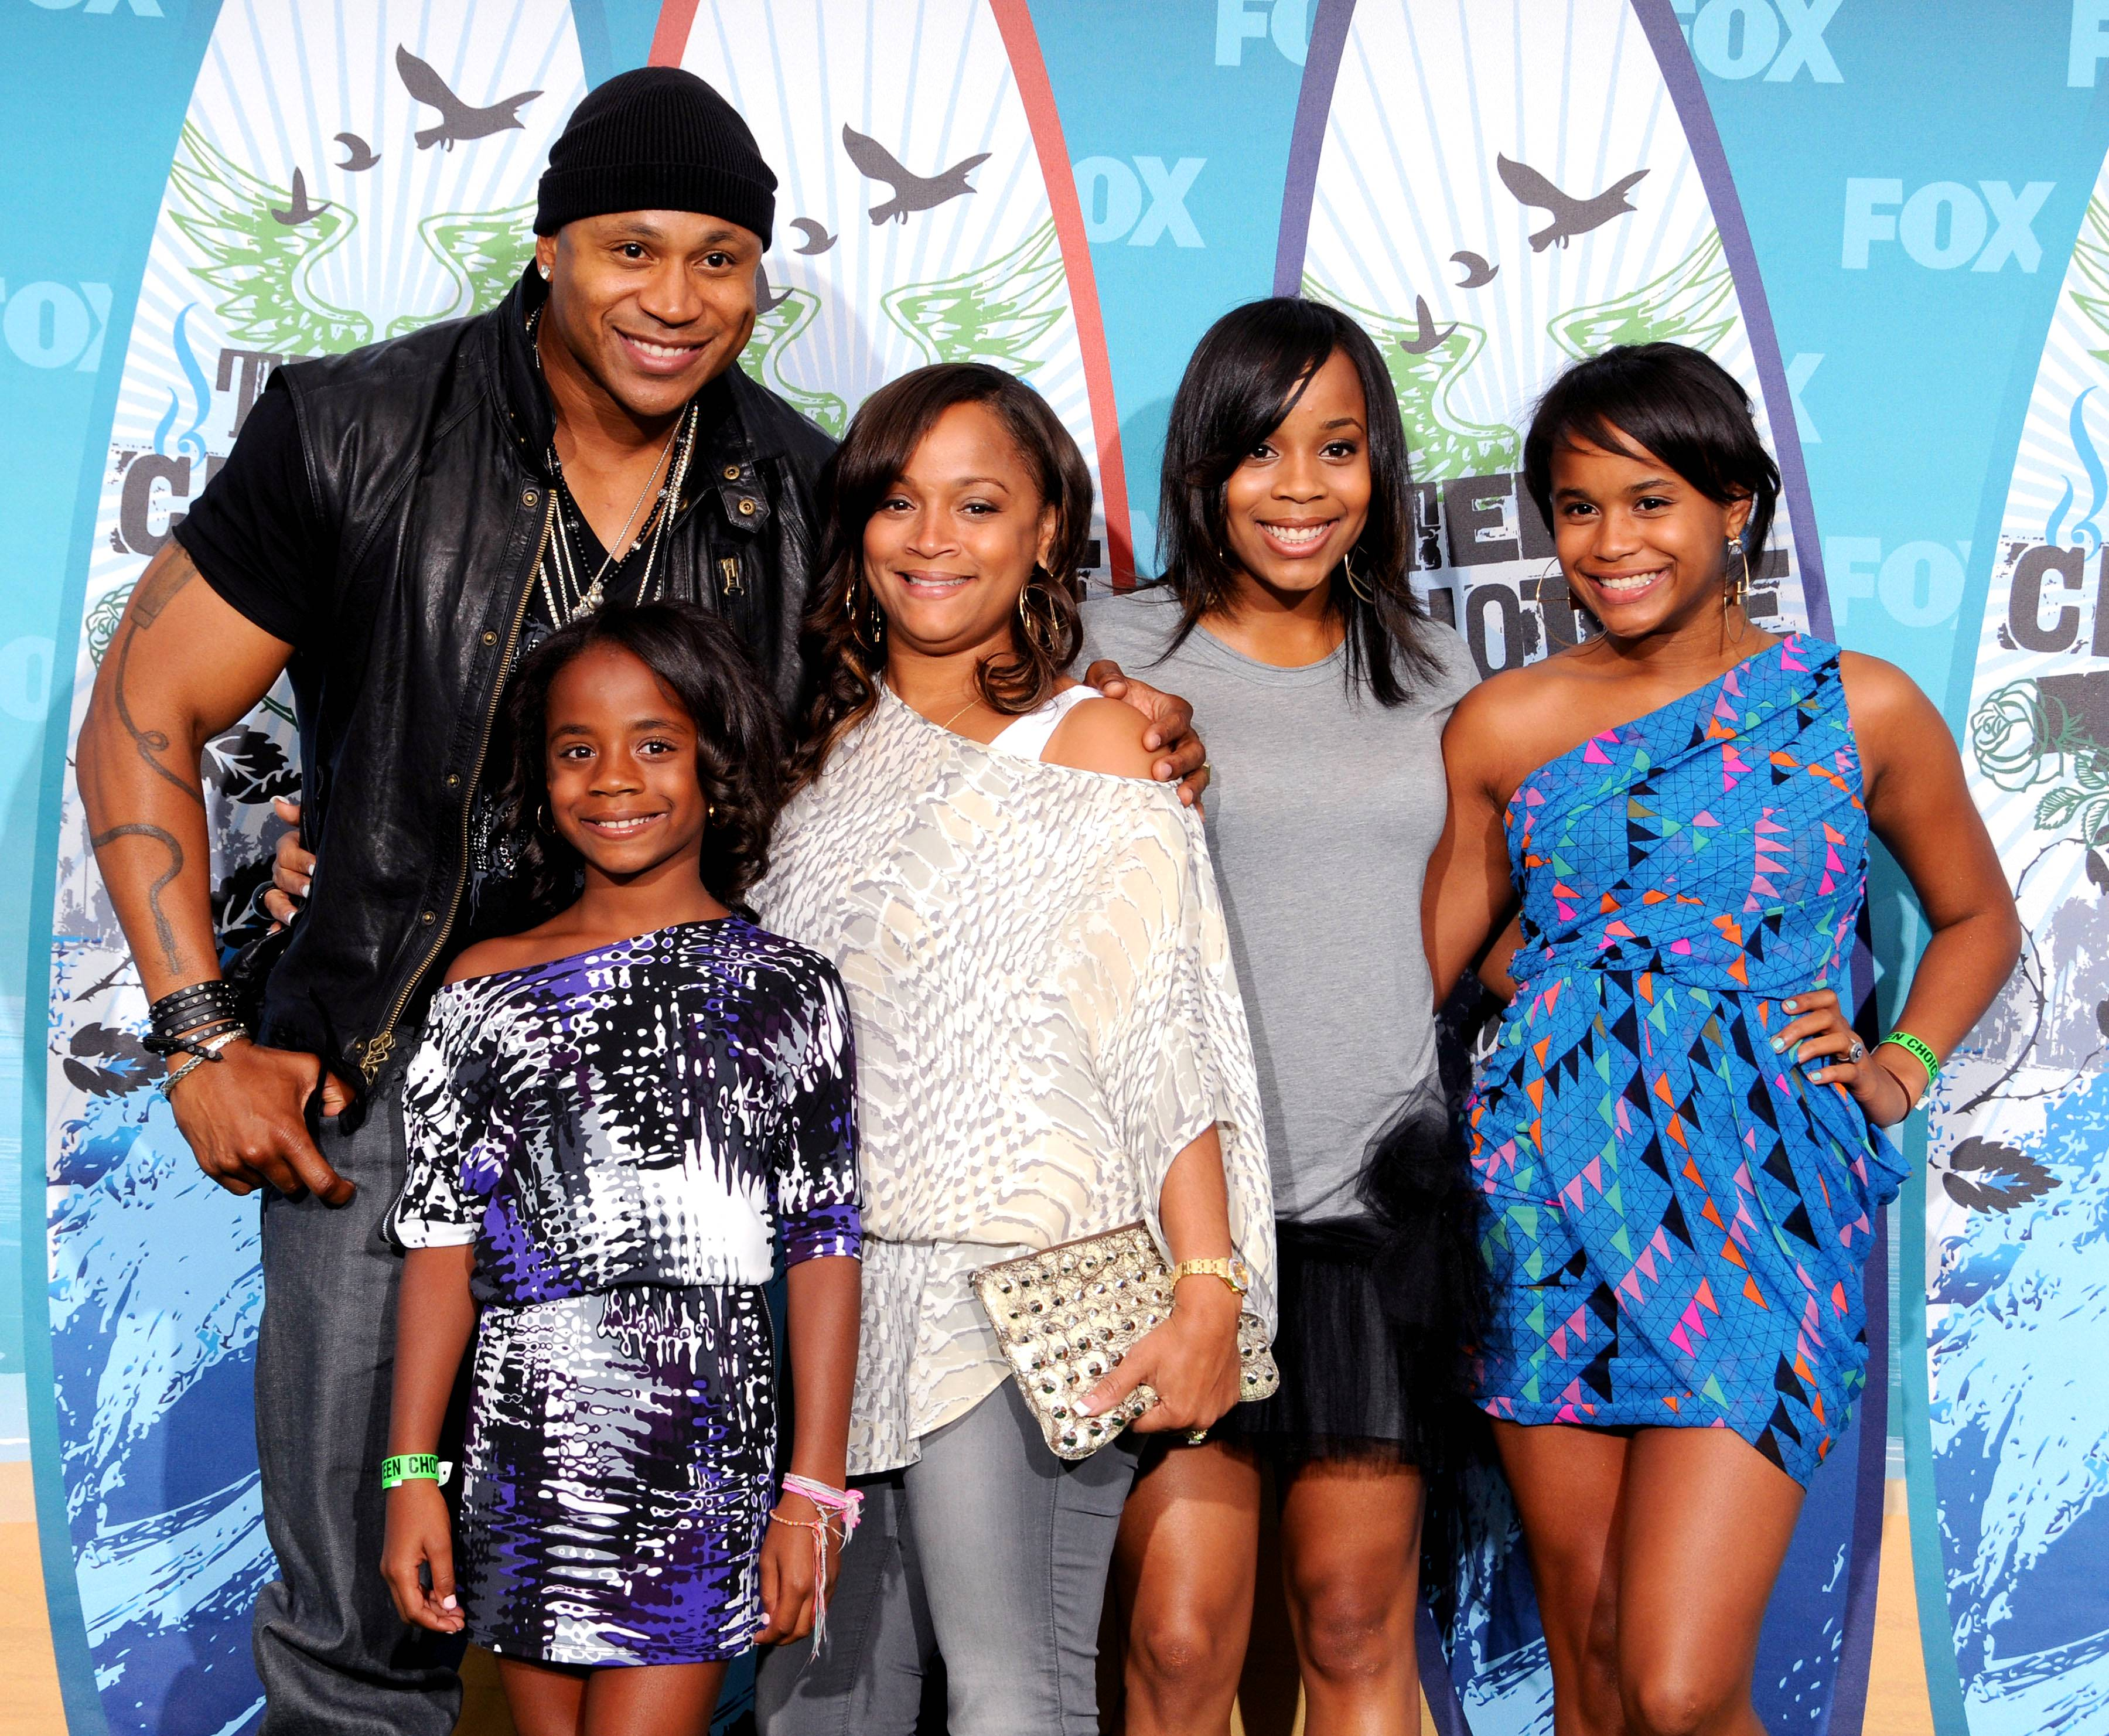 """LL Cool J - LL Cool J recently told the ladies of The Talk: """"I try to inspire my kids. I pull them to the side and say, 'You're beautiful, you're a special young lady, you can do anything you put your mind to. Don't let anybody set the bar for you.' I try to put the gasoline in their tanks.""""(Photo: Gregg DeGuire/Fox/PictureGroup)"""